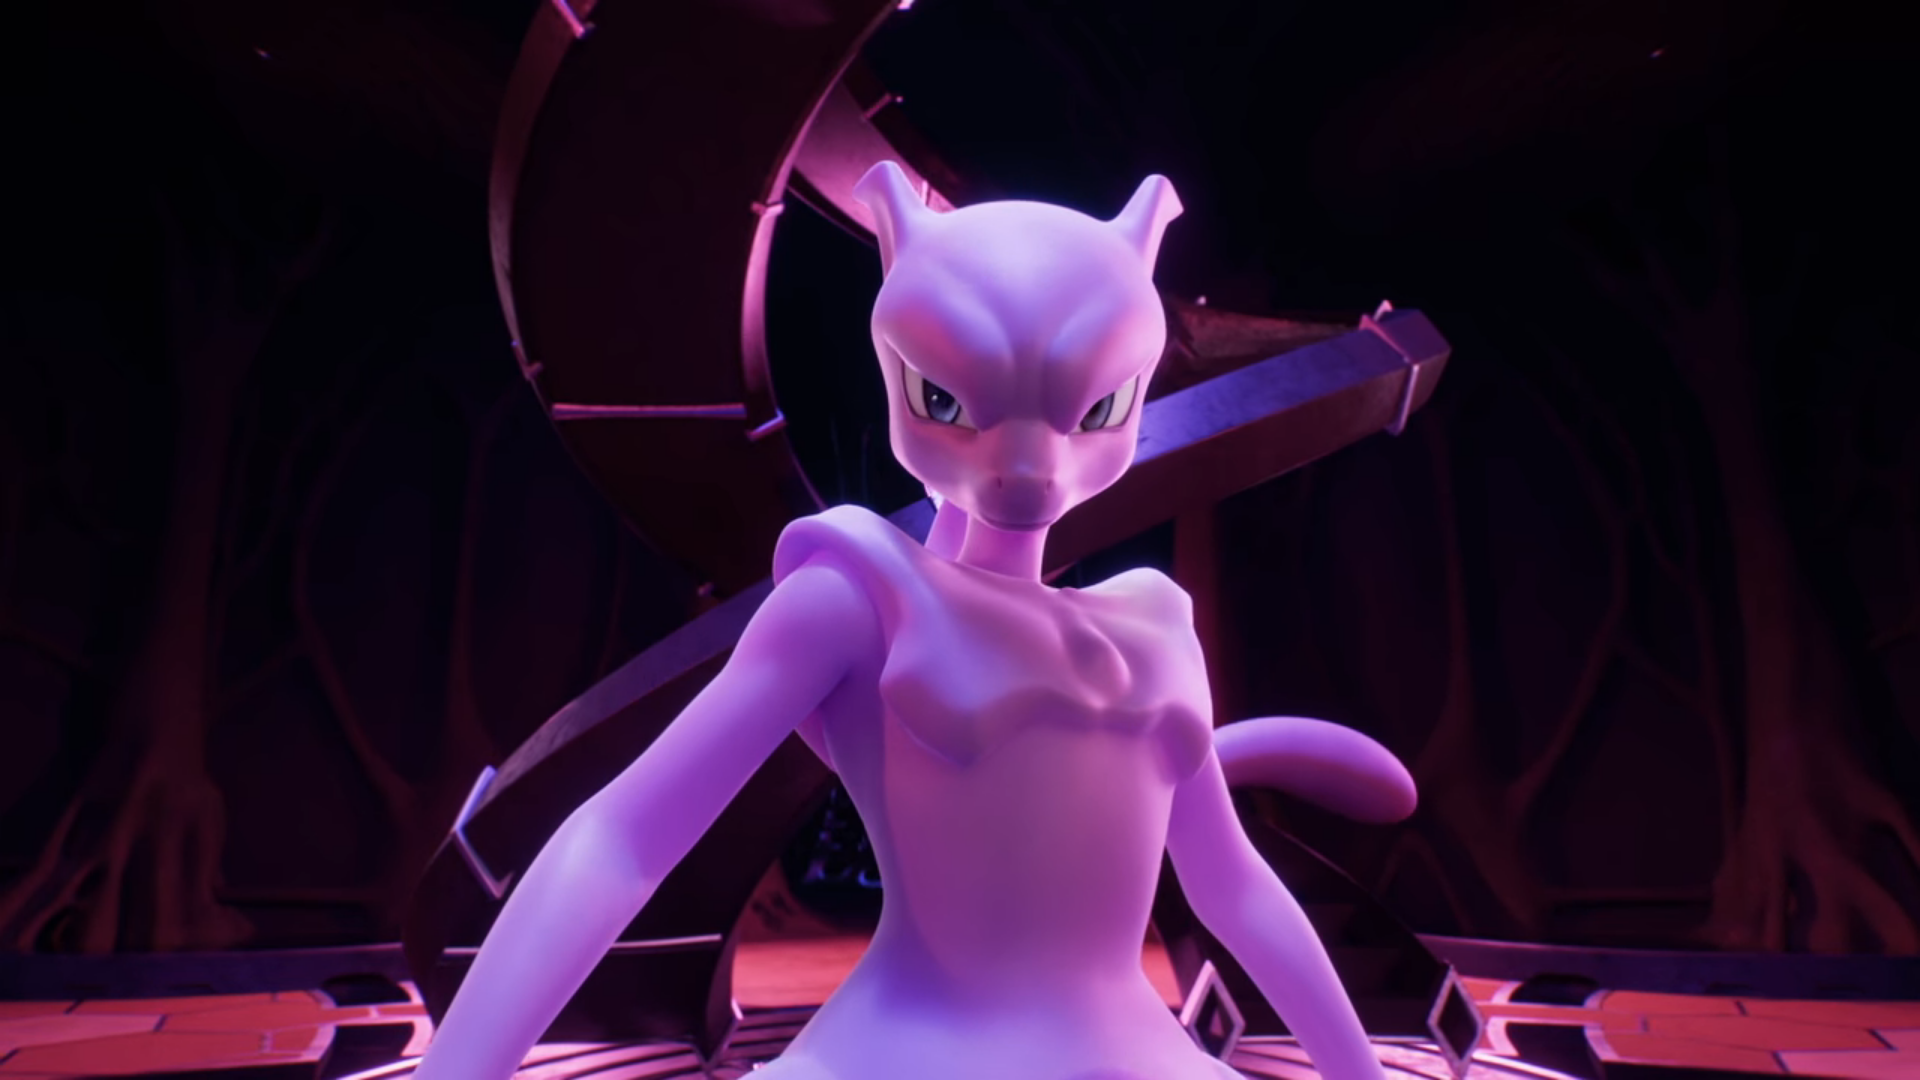 Mewtwo stands menacingly in front of a large spiral staircase